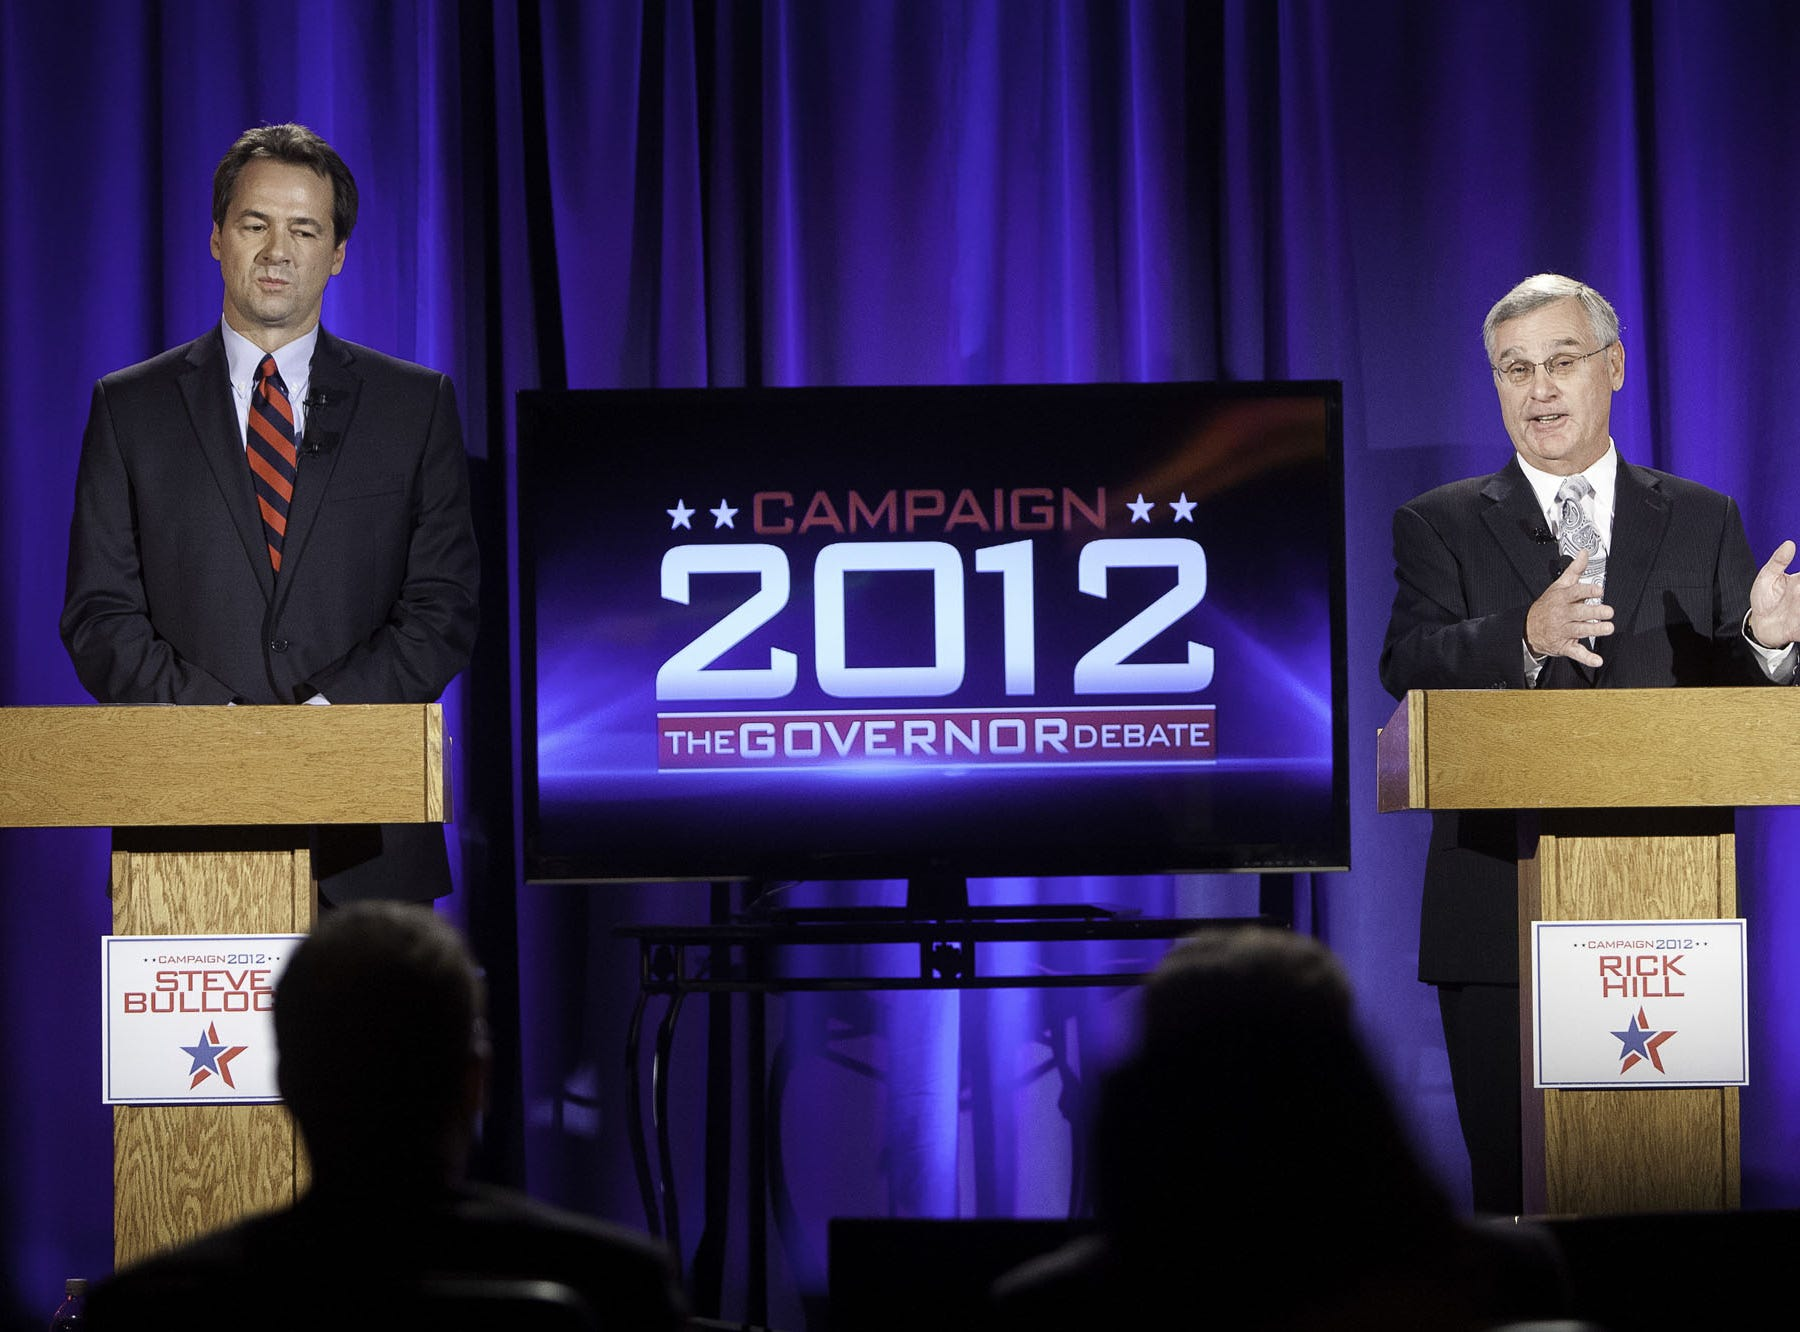 Democrat Steve Bullock, left, listens as Republican Rick Hill makes a point during their final televised gubernatorial debate at Riverside Country Club in Bozeman, Mont., Saturday, Oct. 27, 2012.  They are in a close race to succeed Democratic Gov. Brian Schweitzer. (AP Photo/Bozeman Daily Chronicle, Adrian Sanchez-Gonzalez)